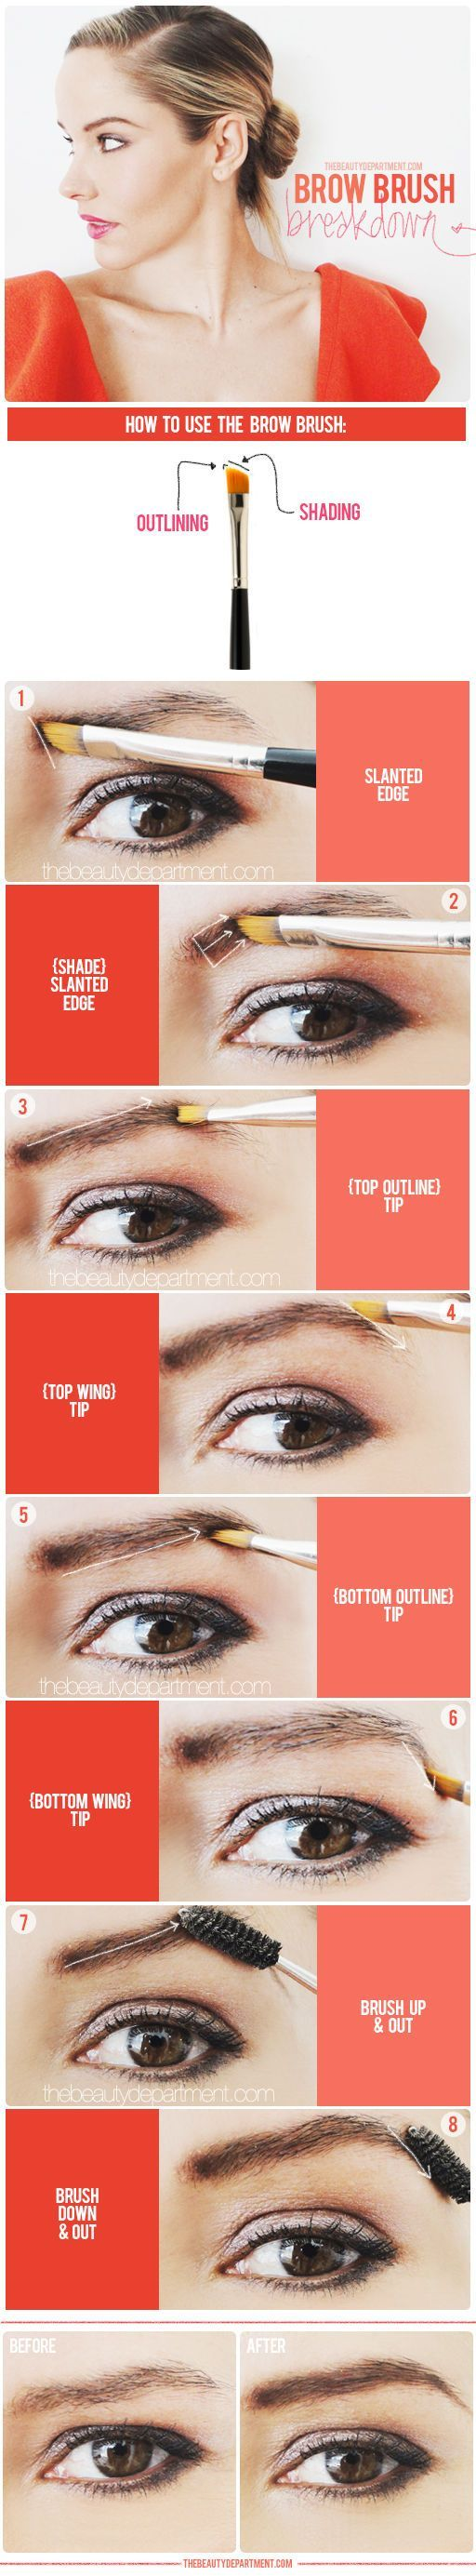 Good to know: how to use a brow brush.: